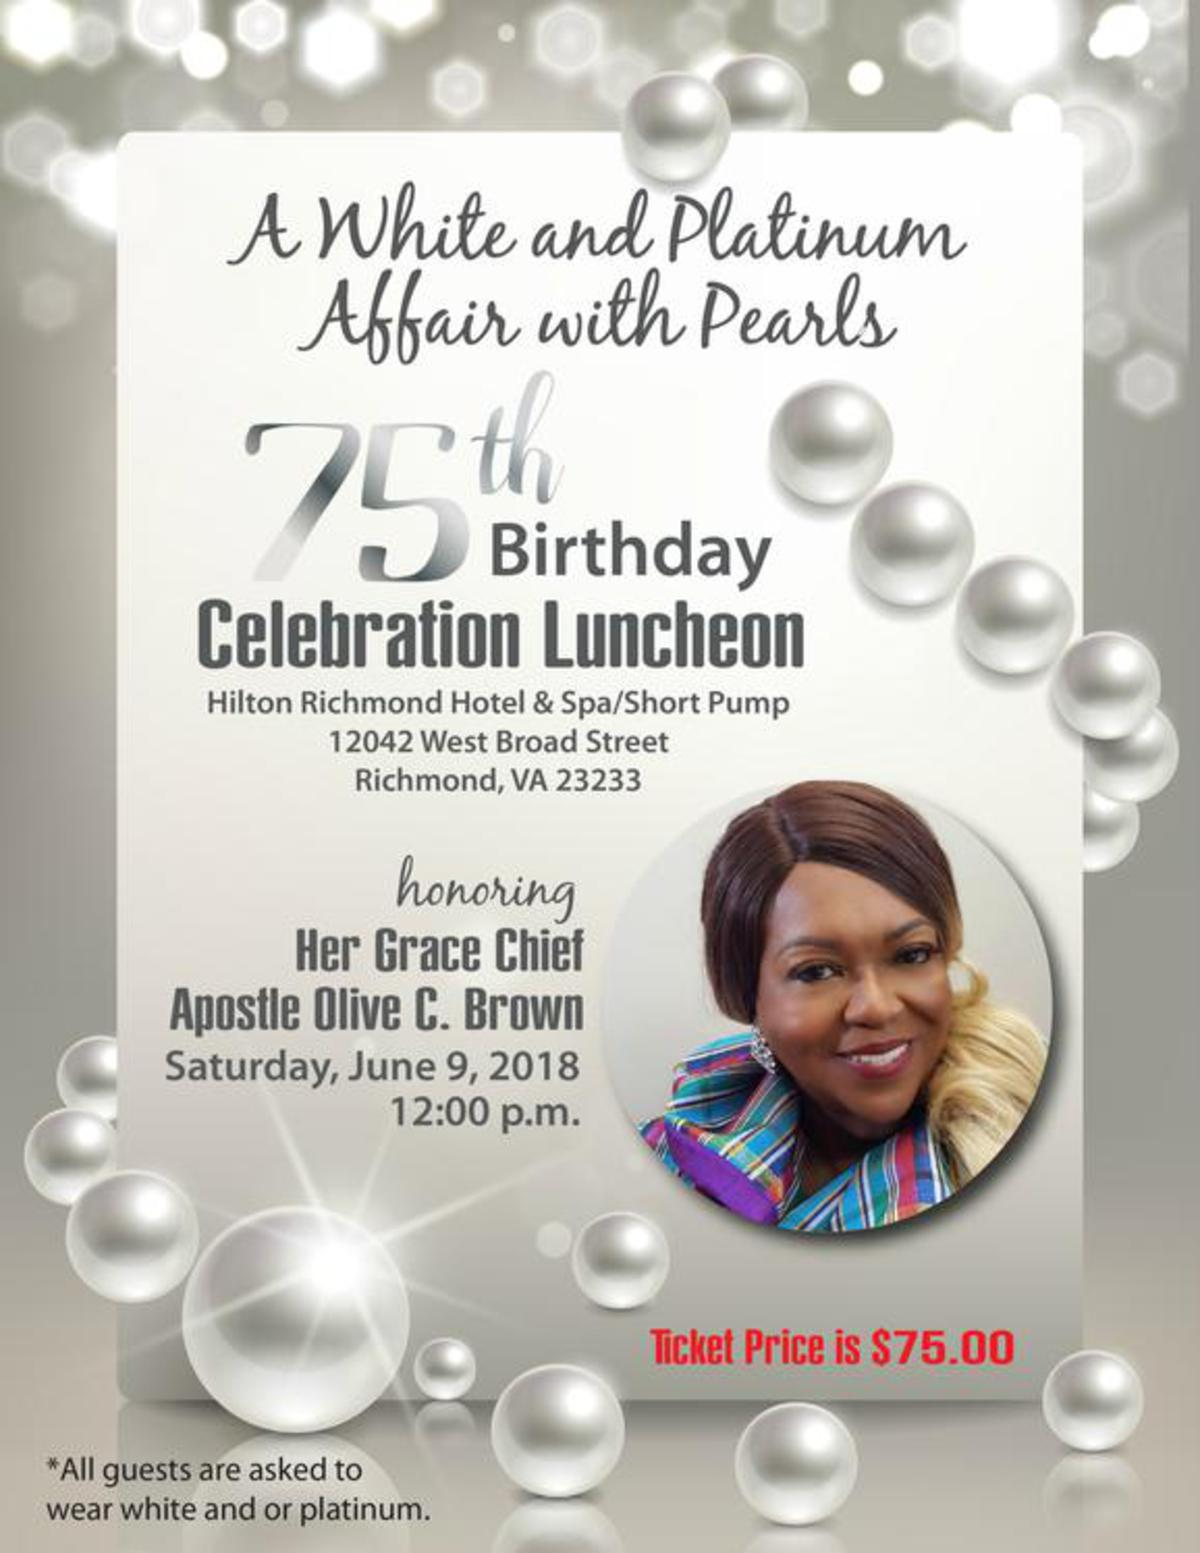 Celebrate Chief Apostle Olive Brown's Birthday!